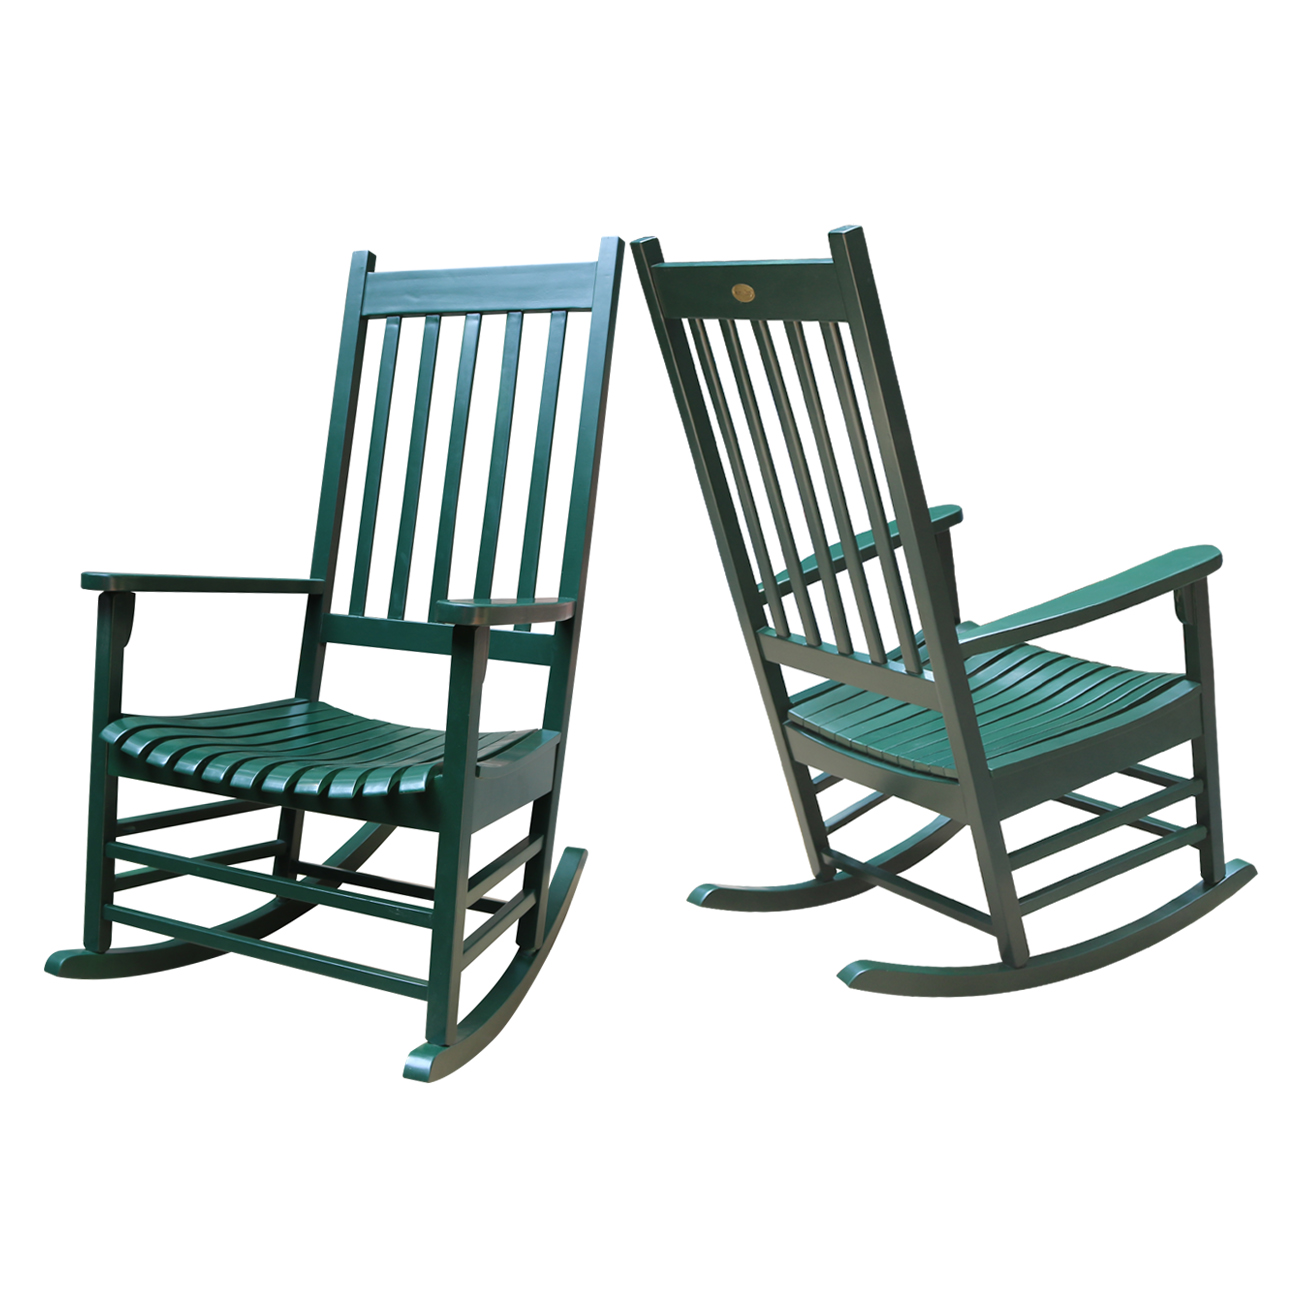 The Whitewood Acacia Finished Porch Rocker In Your Choice